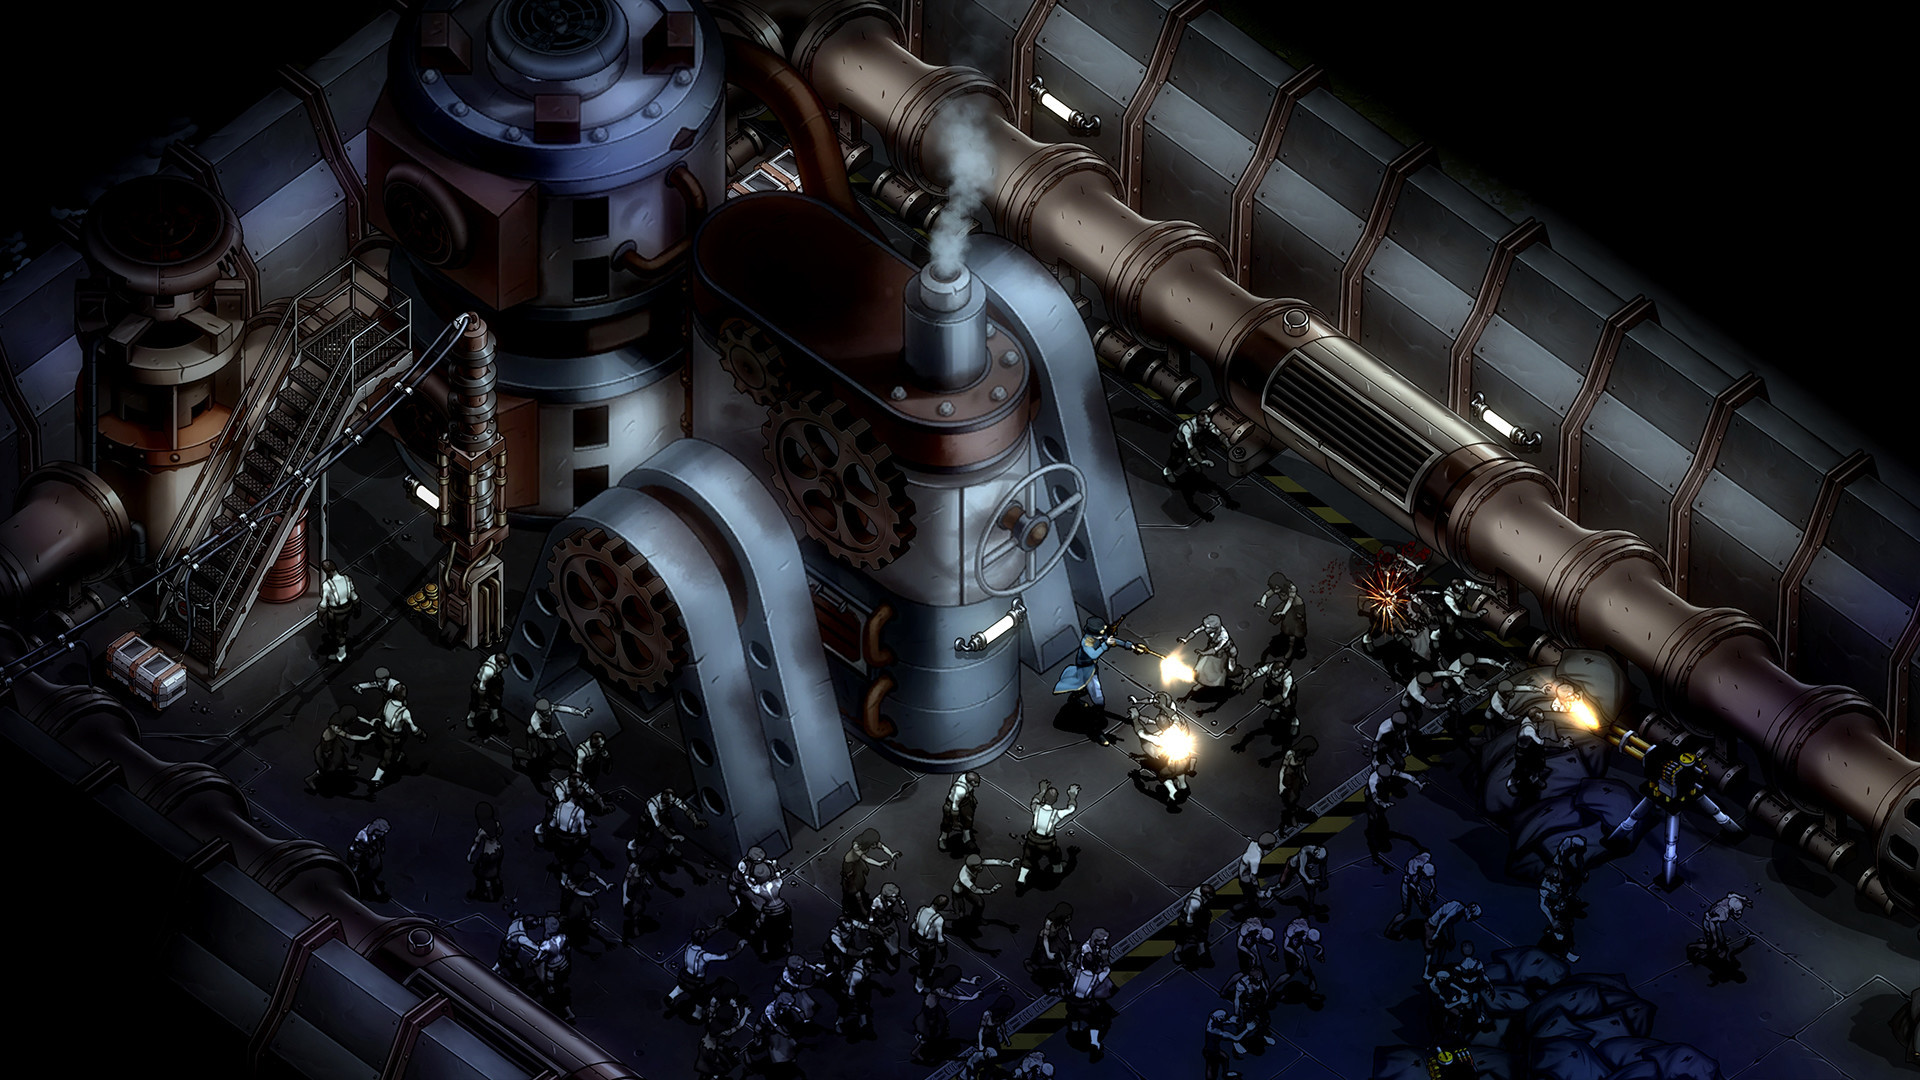 A hero character fights off waves of zombies at the base of some kind of large, sinister looking metal engine of unknown purpose